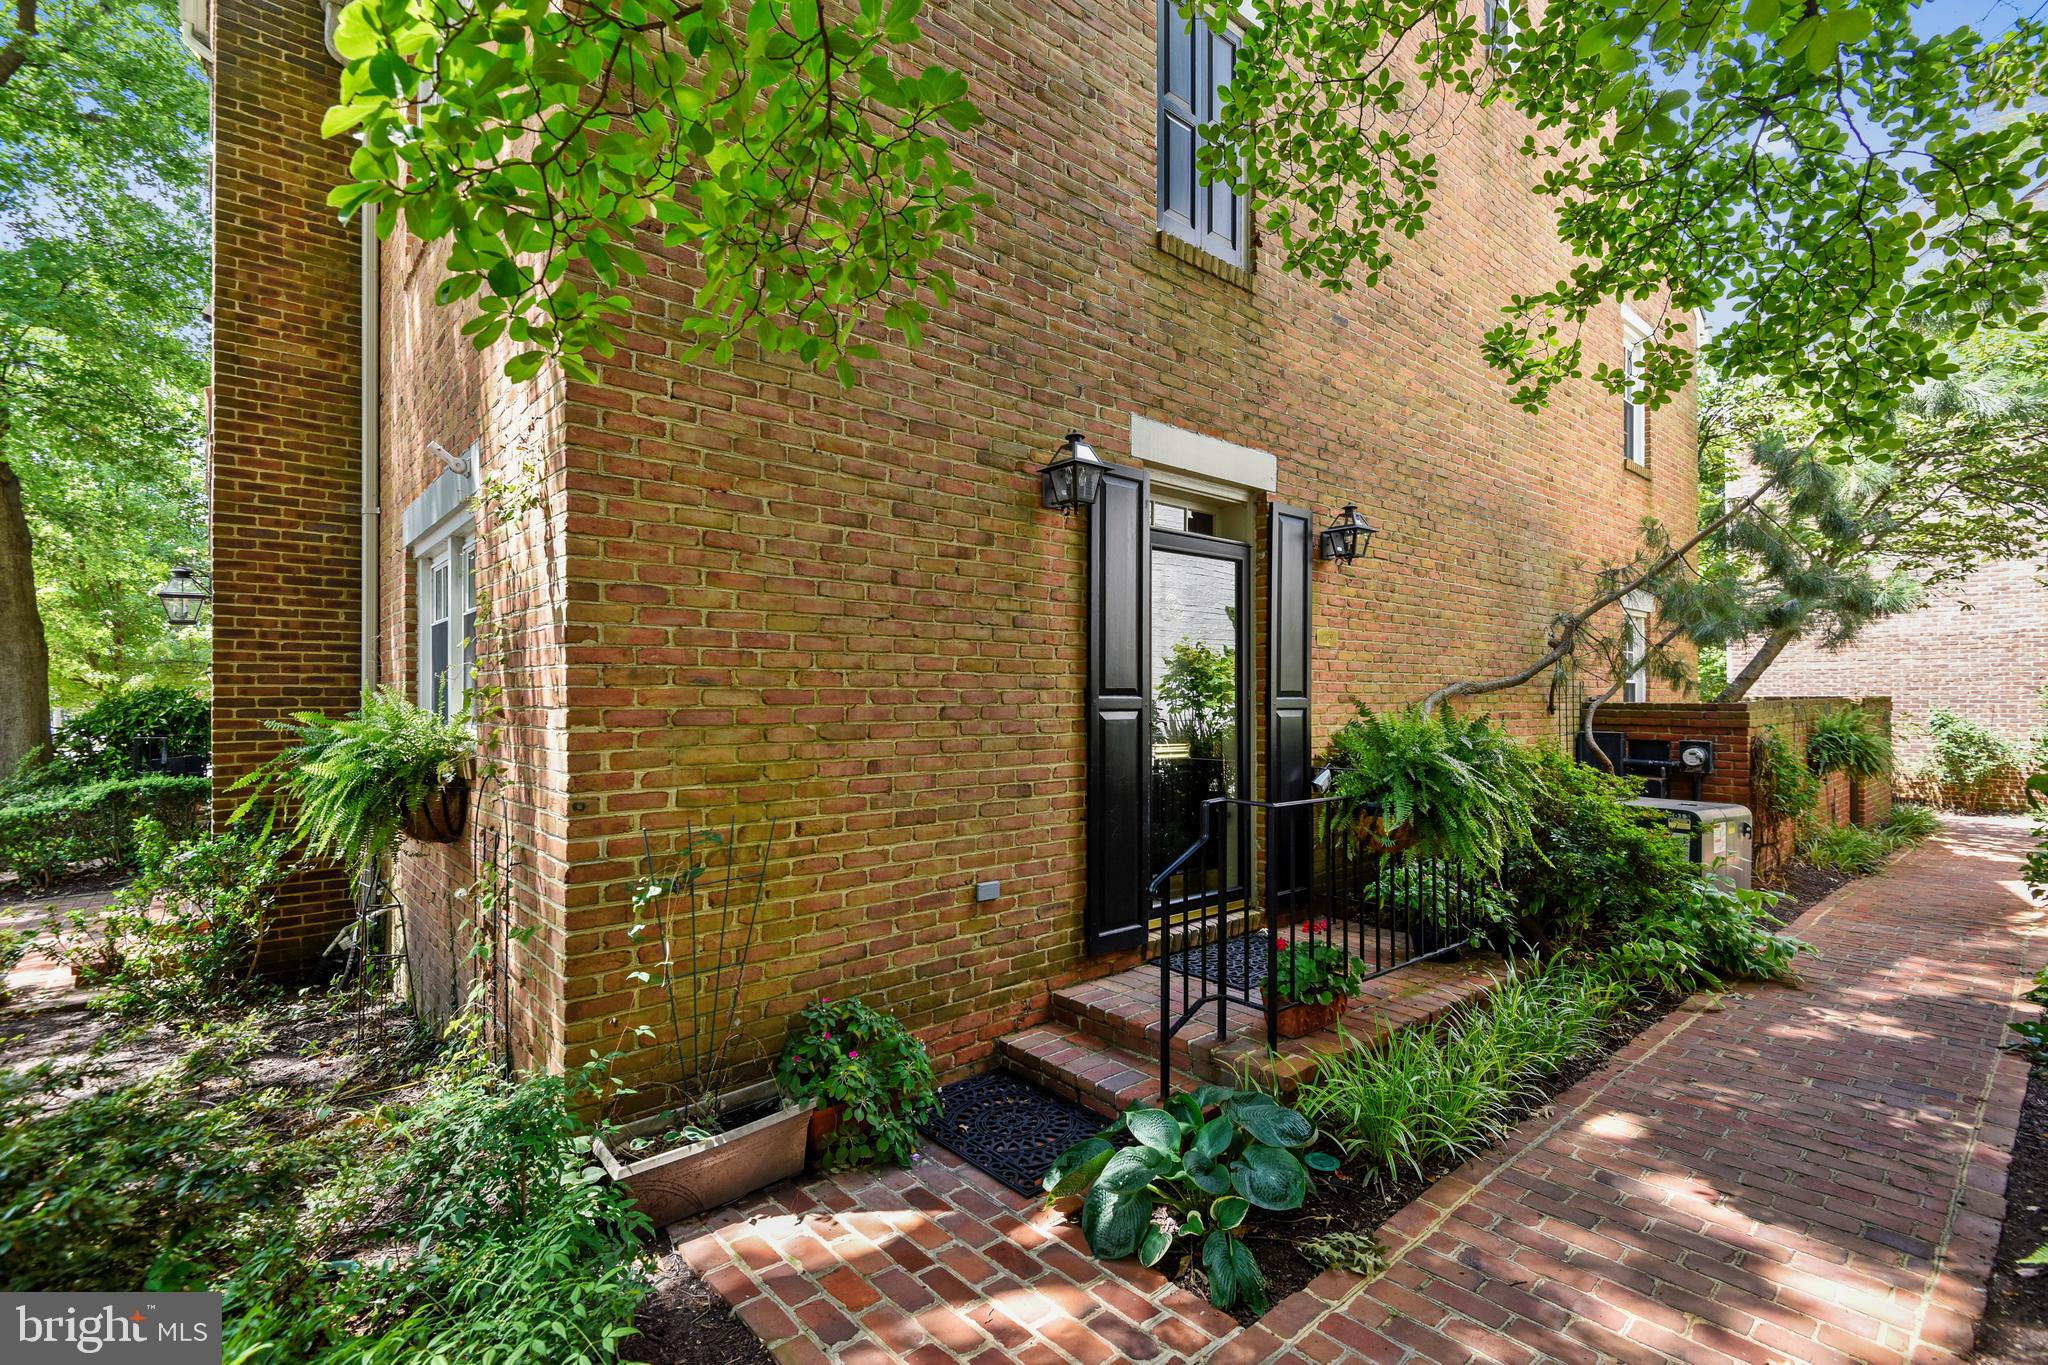 Beautifully renovated Canal Way all brick end-unit town home with 3 bedrooms and 2 full baths in an outstanding location just 1 light from DC. Freshly painted top-to-bottom and move-in ready with just refinished hardwood floors & stairs on all 3 levels, granite counters all new stainless steel appliances in the kitchen and a completely gutted and remodeled full bath on the second level. Two wood burning fireplaces, 1 in the living room and 1 in the master bedroom and the master bedroom also includes a walk-in closet with a custom built-in organizer system. The top floor features the 3rd bedroom, 2nd full updated bath and a very unique loft area overlooking the master bedroom that would make the perfect home office. New stack washer & dryer also included on the 3rd floor. Other notable updates include new outdoor A/C unit March of 2016, new not water heater Dec 2018 and updated thermal pane windows 2010. The living room French doors open onto a charming brick walled patio with a gate opening to a walkway through the common area to your reserved parking space in the community courtyard parking lot. Just .08 of a mile/16 minute walk from the Braddock Rd Metro station and only a few short short blocks from Harris Teeter, Trader Joes, numerous restaurants and shops and the Potomac River waterfront. And I dare I leave out it is just 3.6 miles from Amazons HQ2 in the new National Landing development at Crystal City and the new Virginia Tech Innovation Campus and future Metro stop at Potomac Yard. Yes, you can have it All!